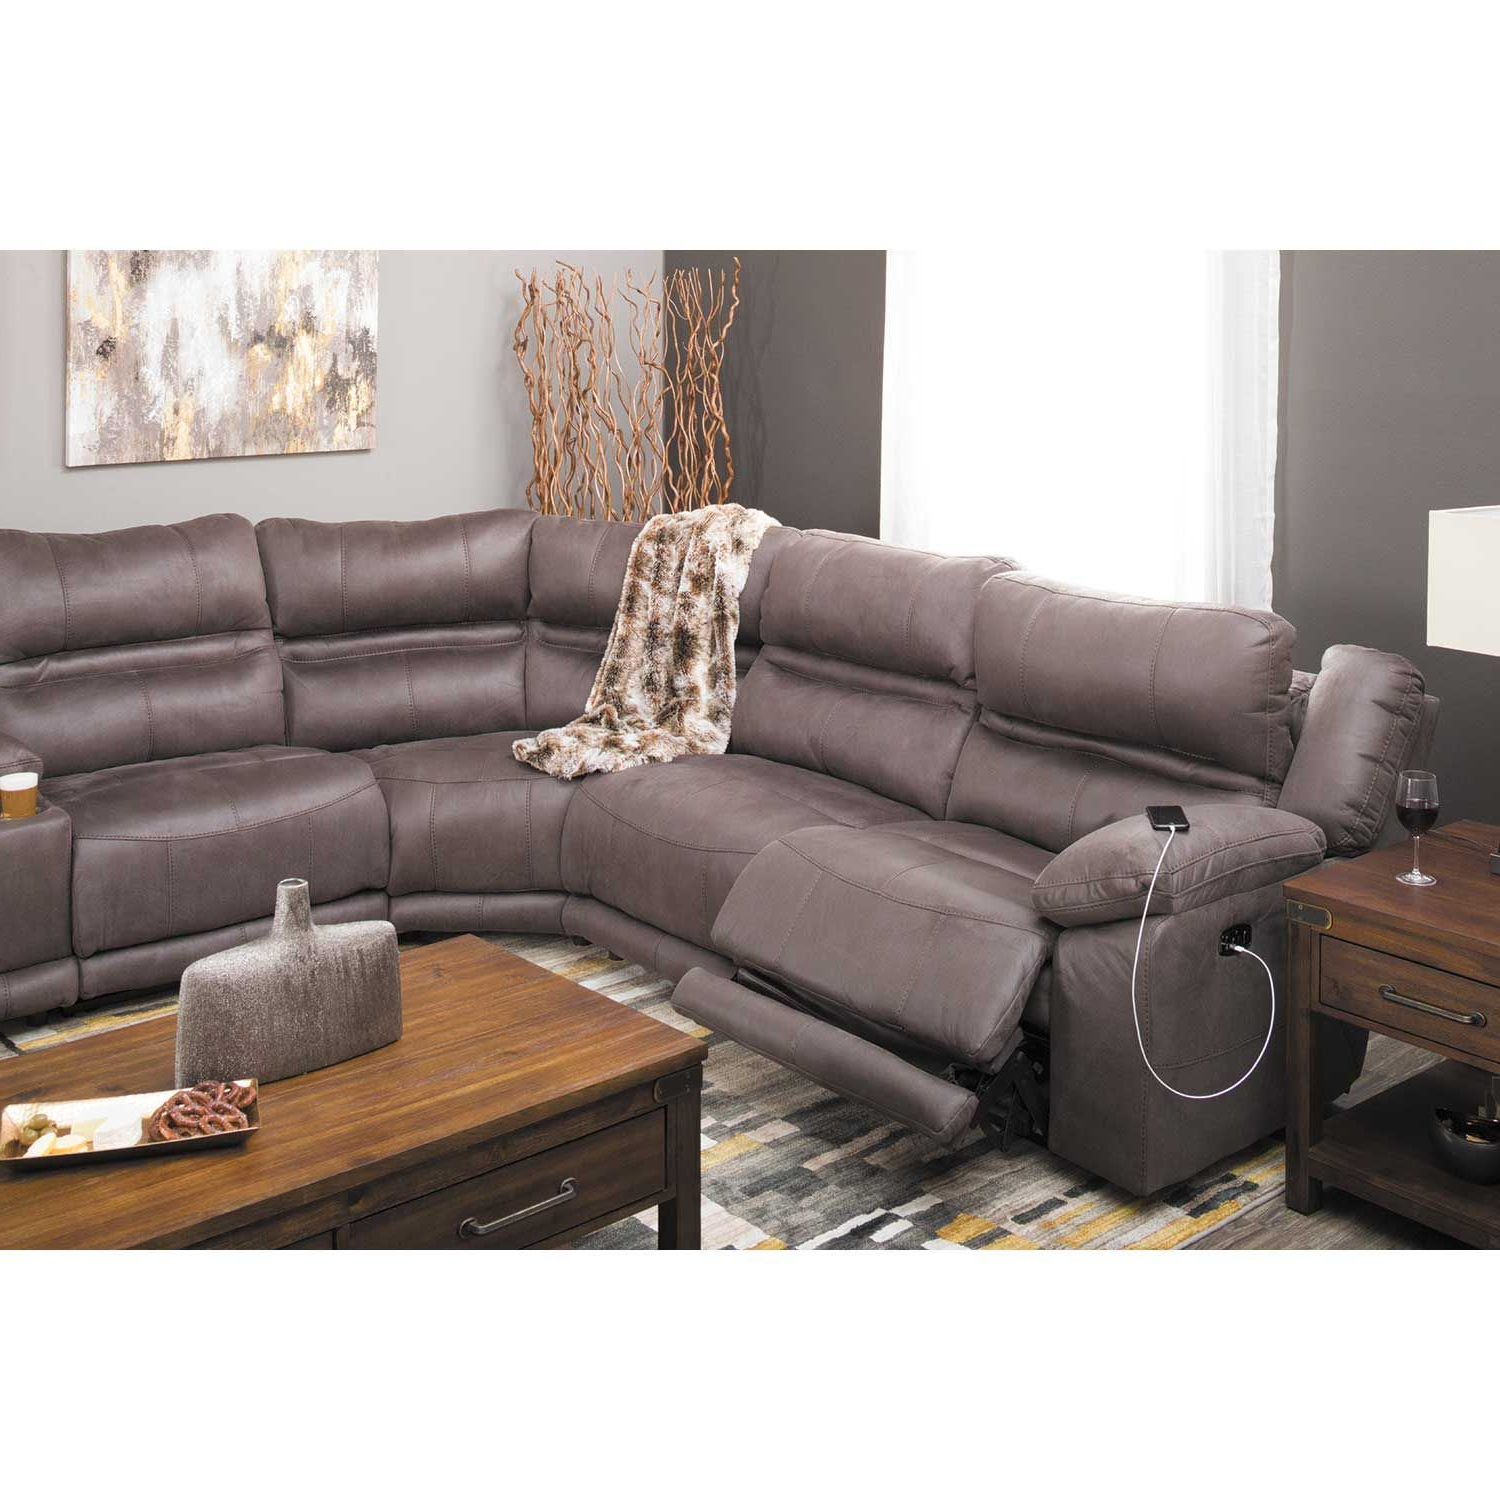 Famous Braxton 6 Piece Power Reclining Sectional With Adjustable Headrest Throughout Jackson 6 Piece Power Reclining Sectionals With Sleeper (View 17 of 20)